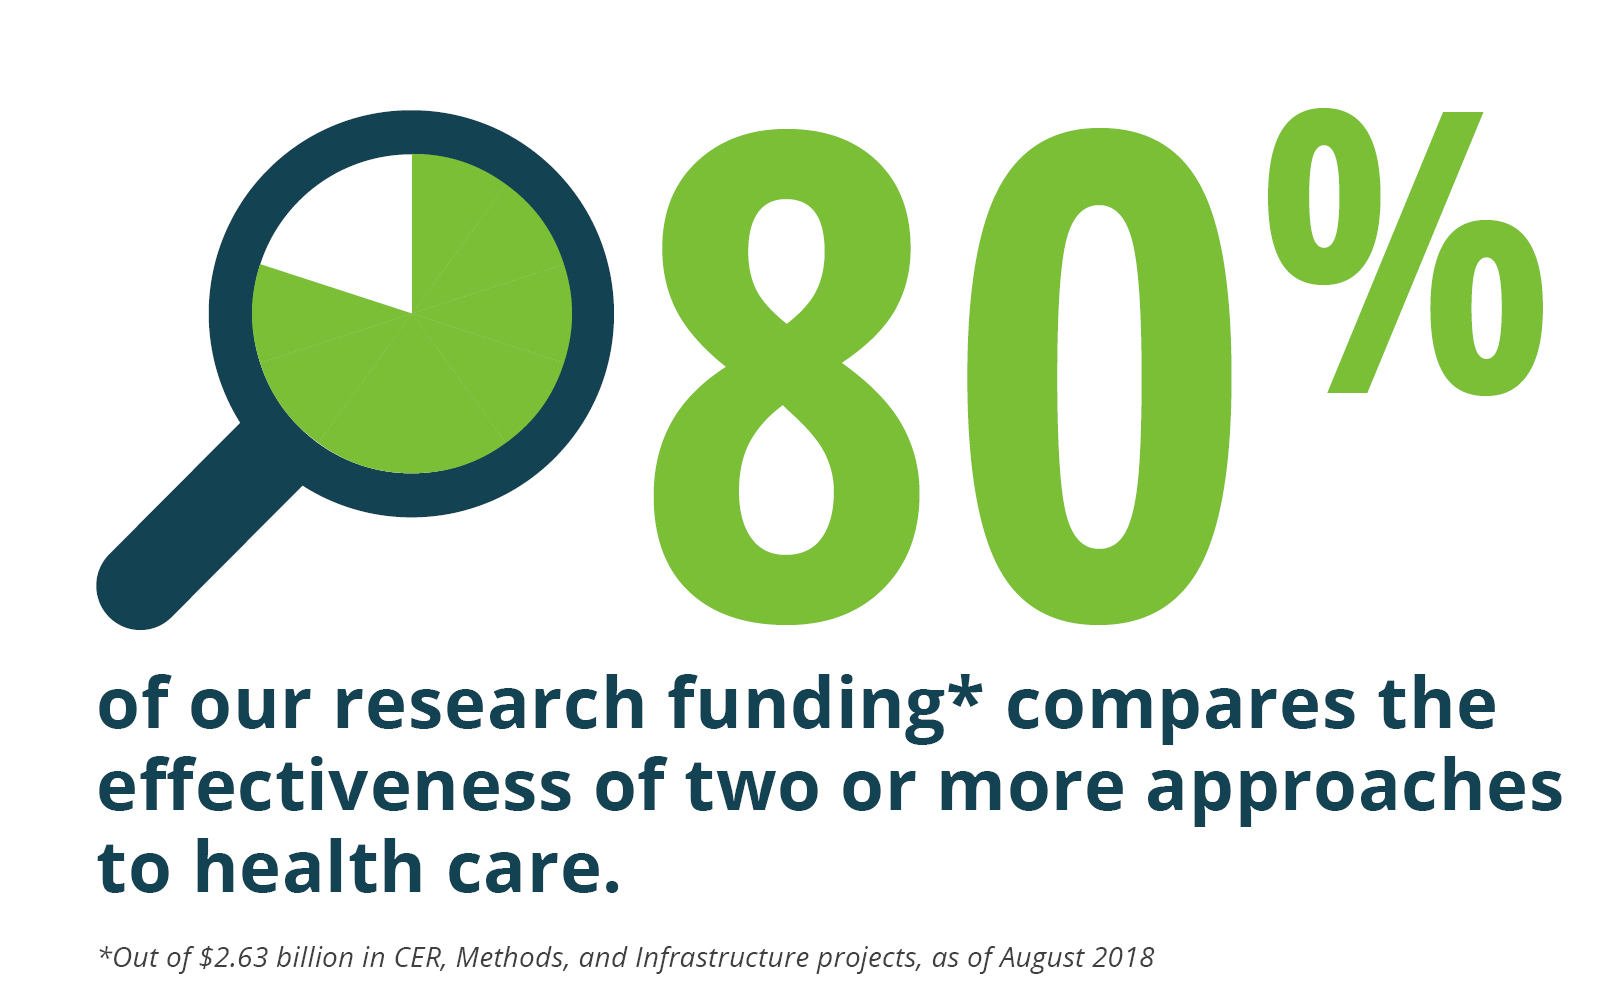 80 percent of our research funding* compares the effectiveness of two or more approaches to health care. Out of $2.63 billion in CER, Methods, and Infrastructure projects as of August 2018.